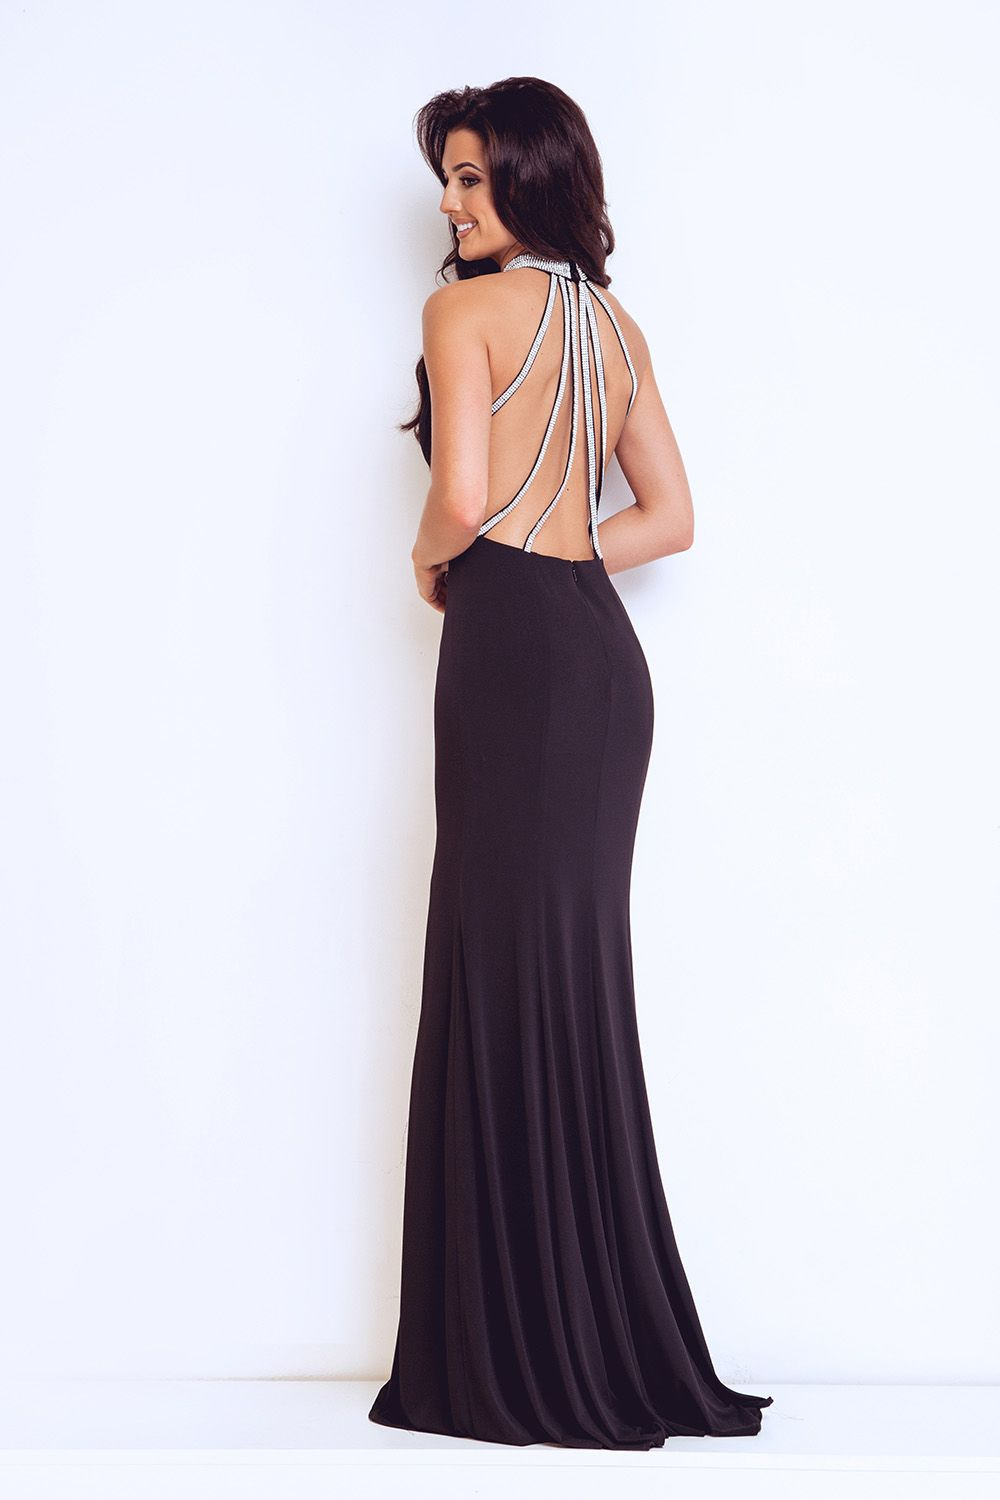 Backless back detailed dress. This Halterneck backless gown comes in ...